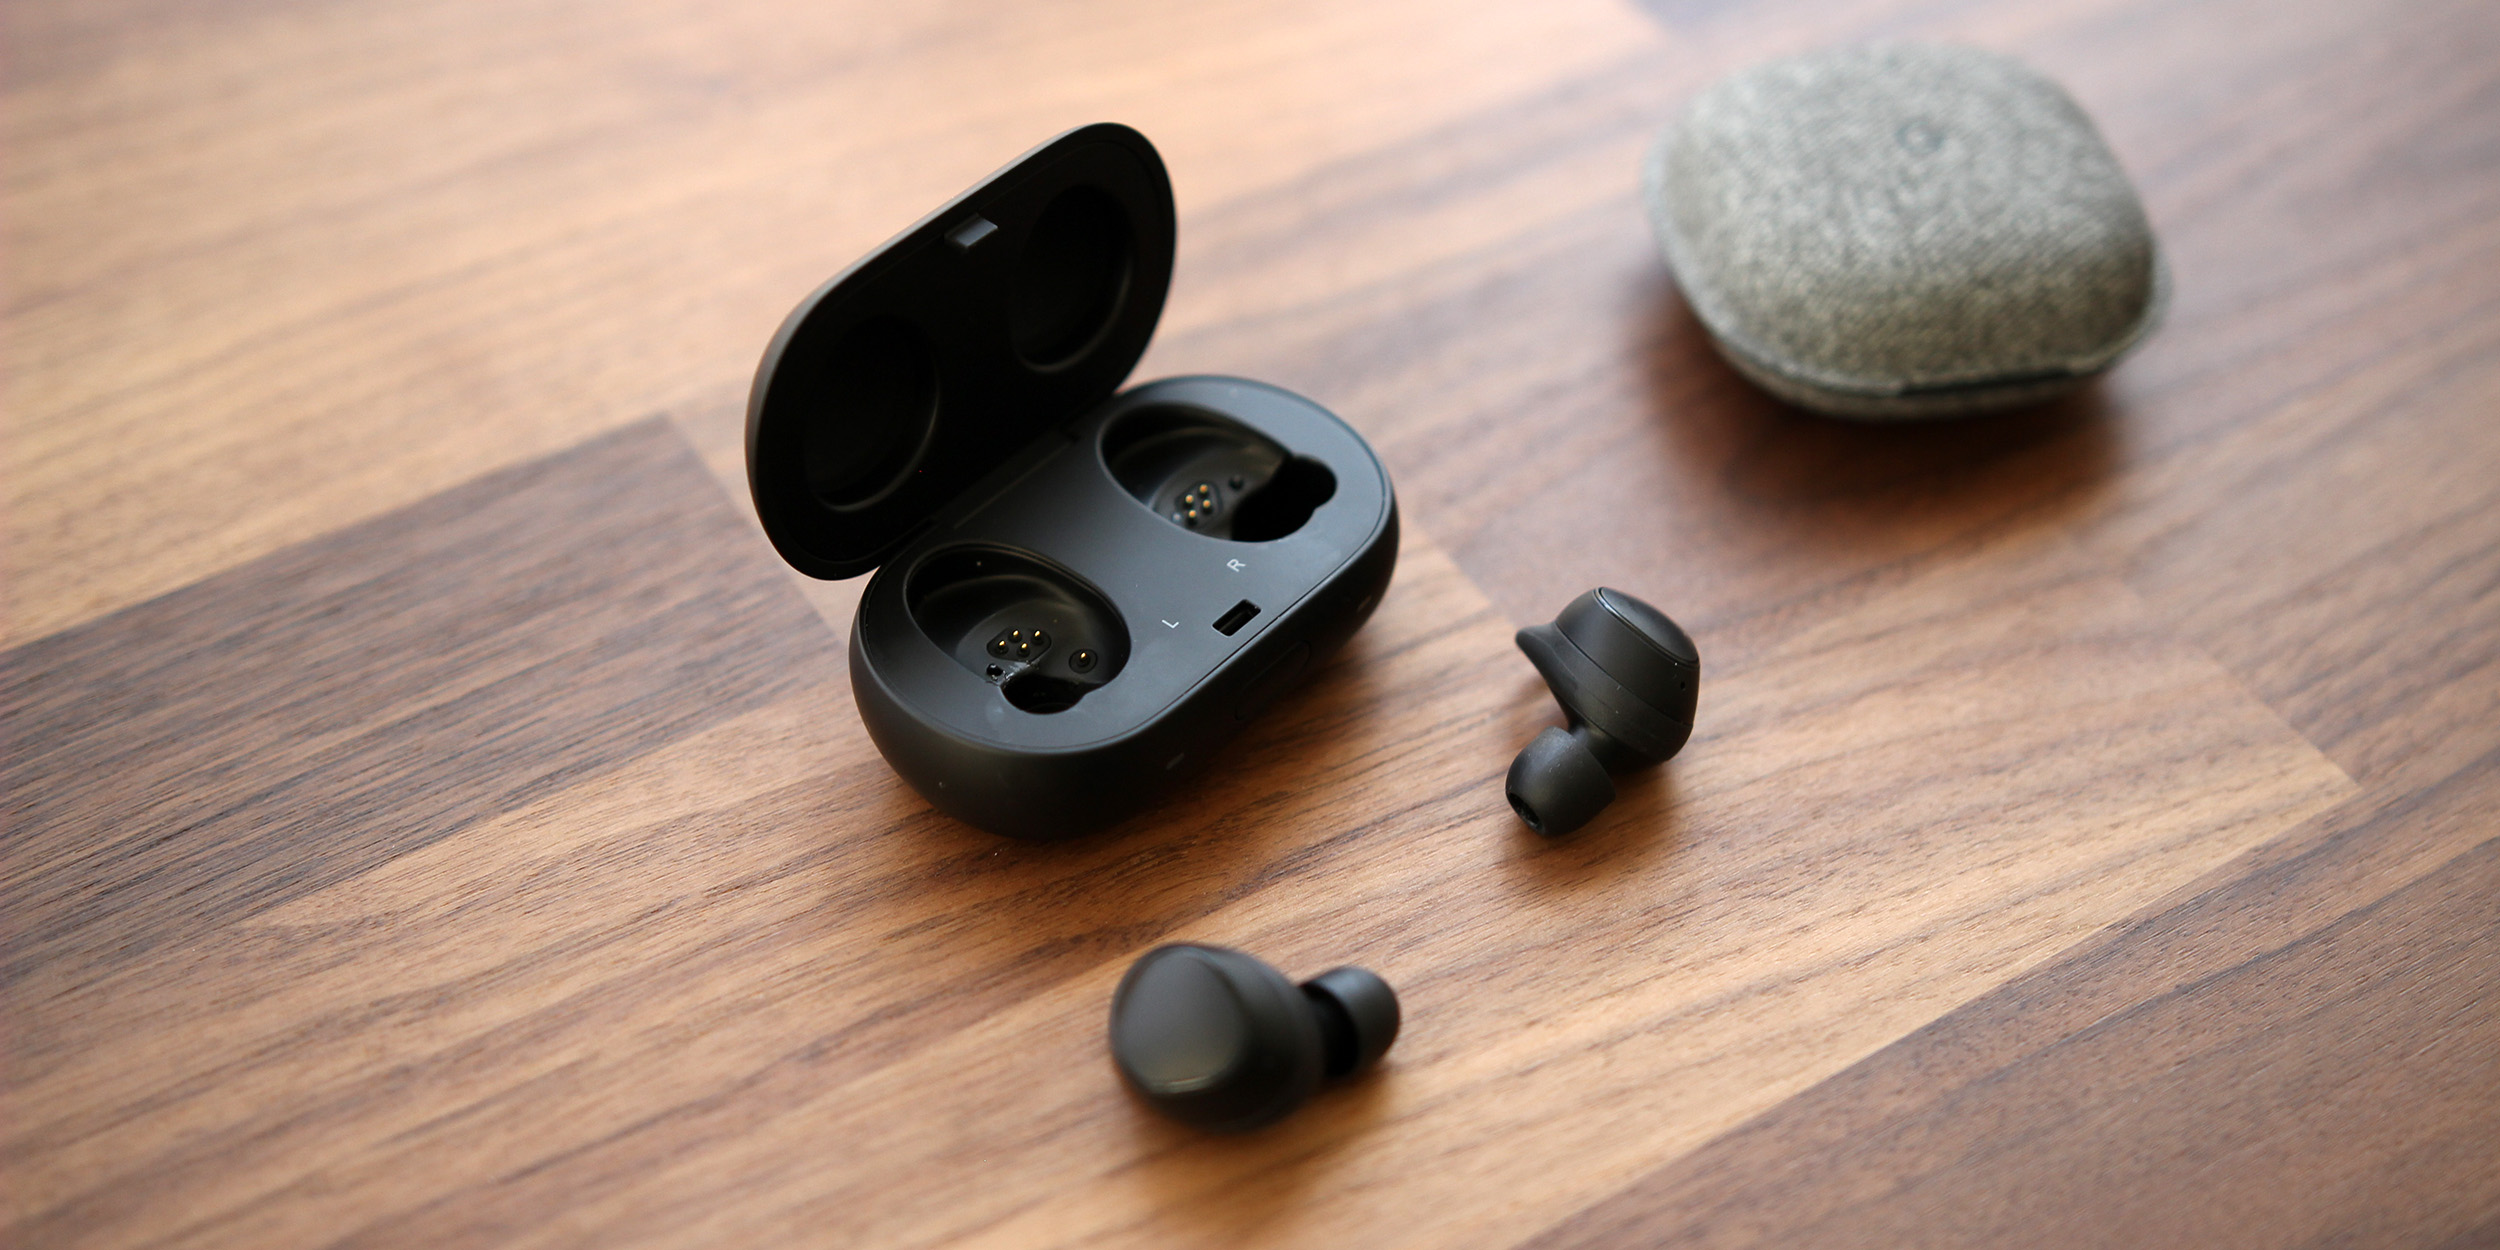 Samsung Gear IconX 2018 Review: Not quite Android's AirPods, but an